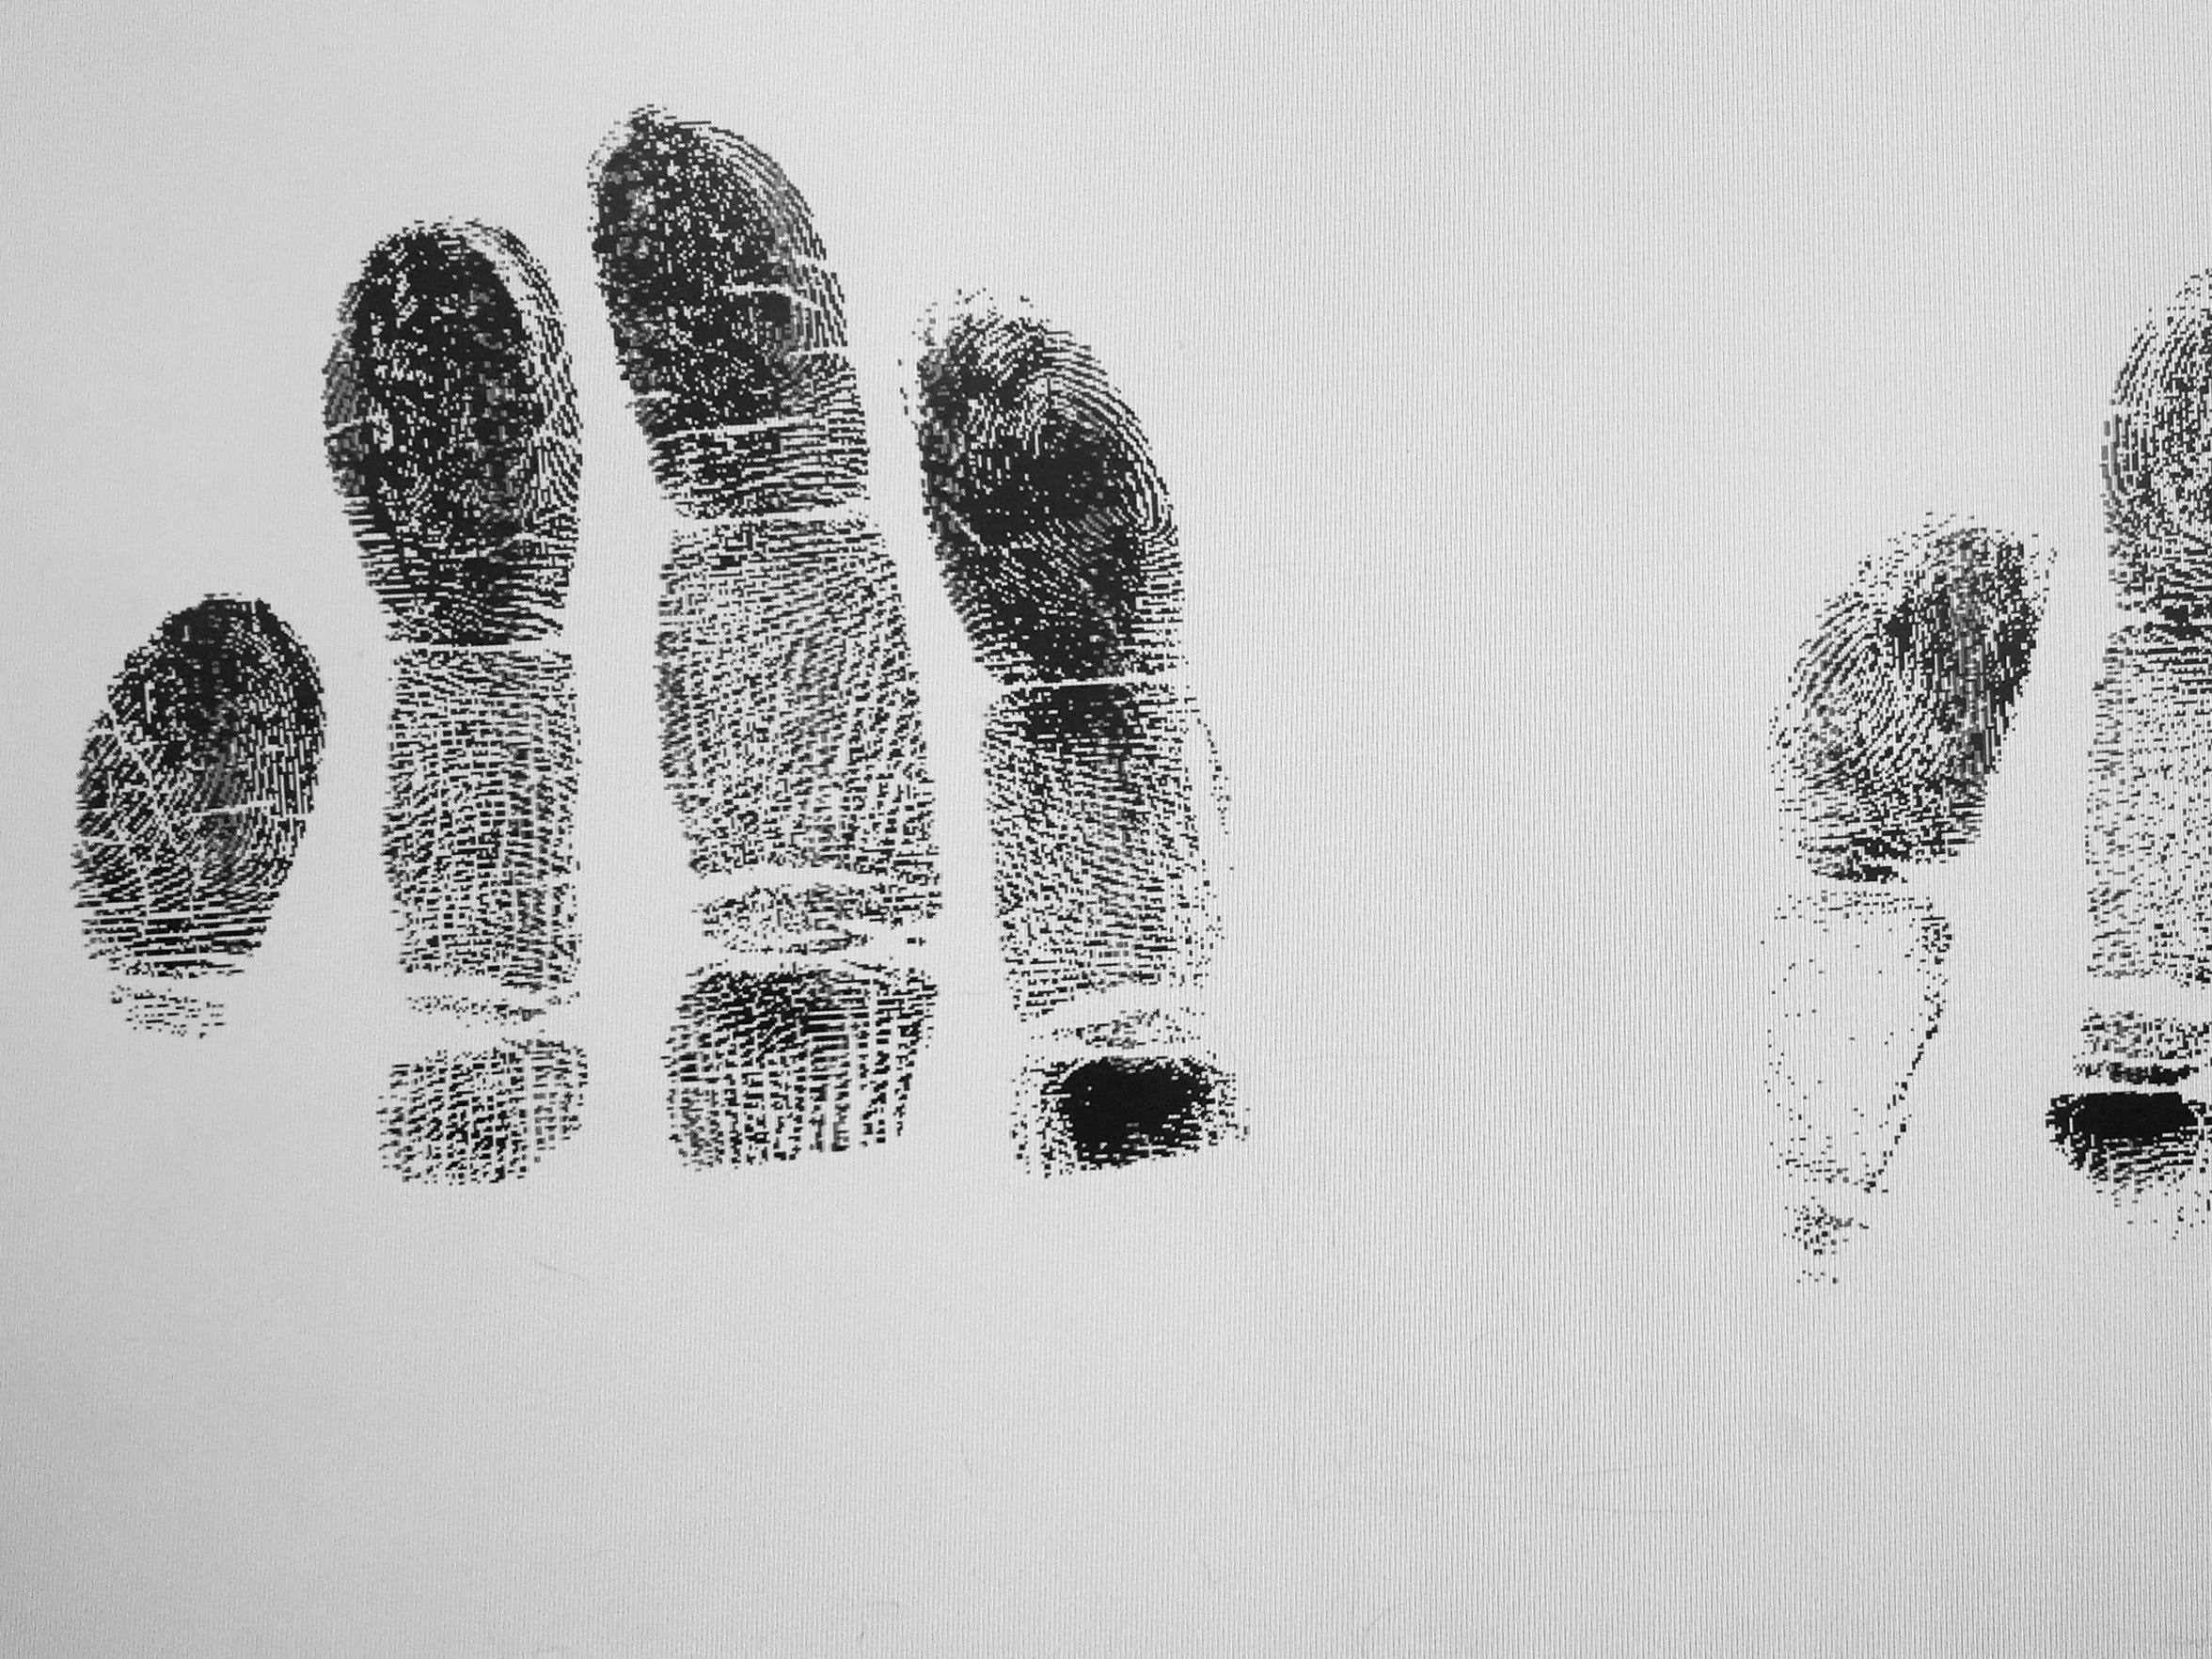 The fingerprints of a registered sex offender who committed